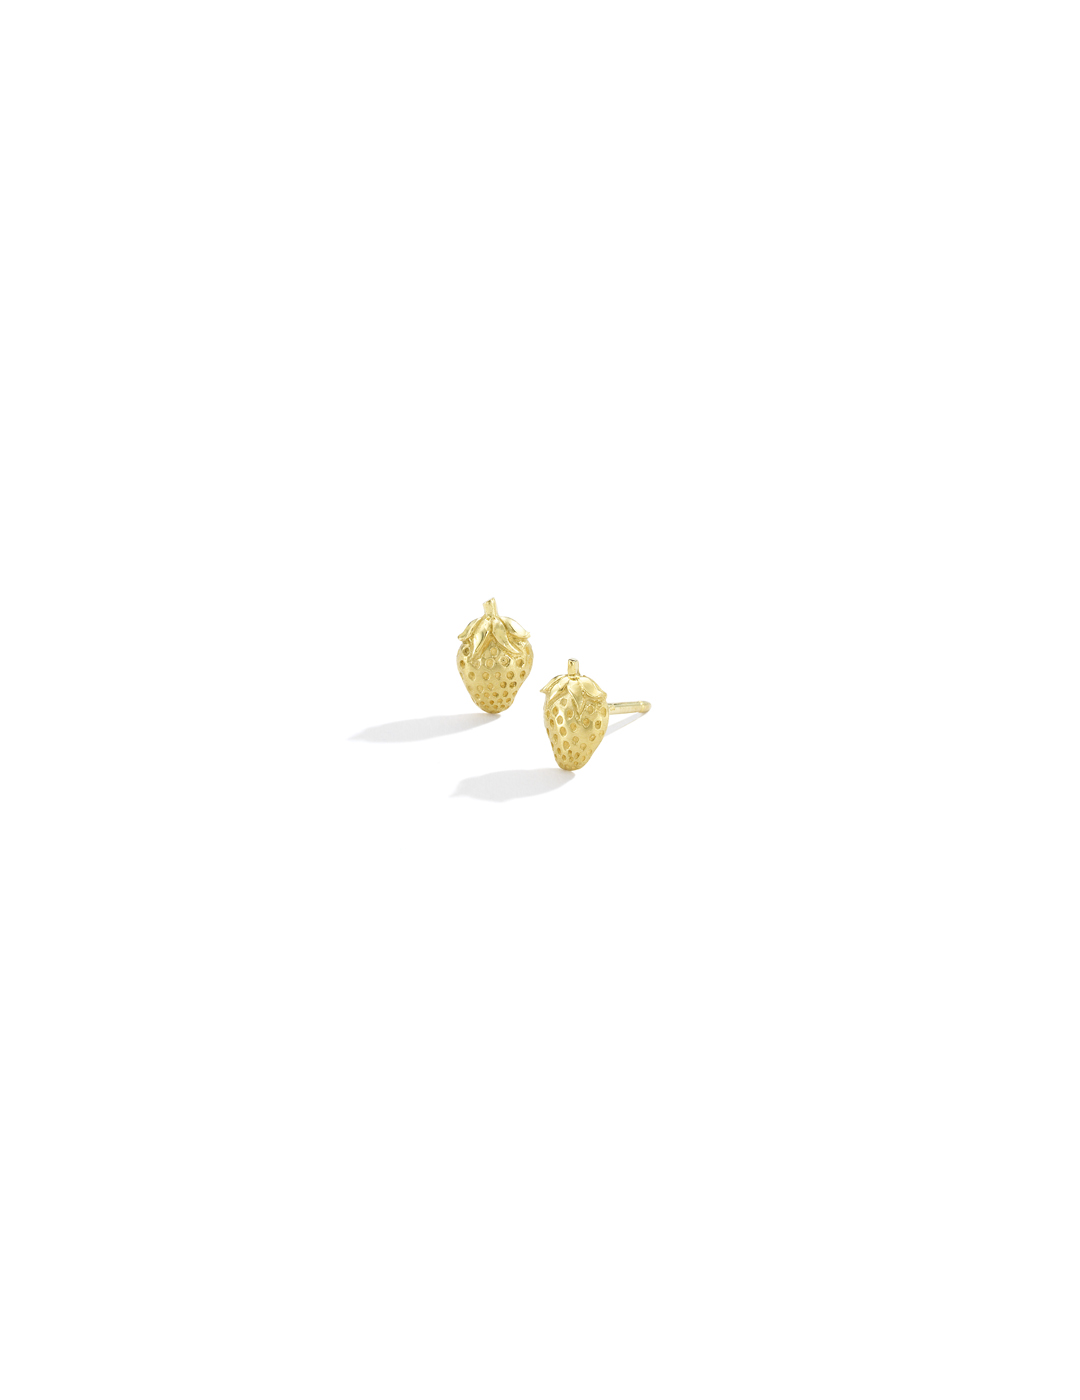 mish_products_earrings_StrawFruit-Tiny-ER-1